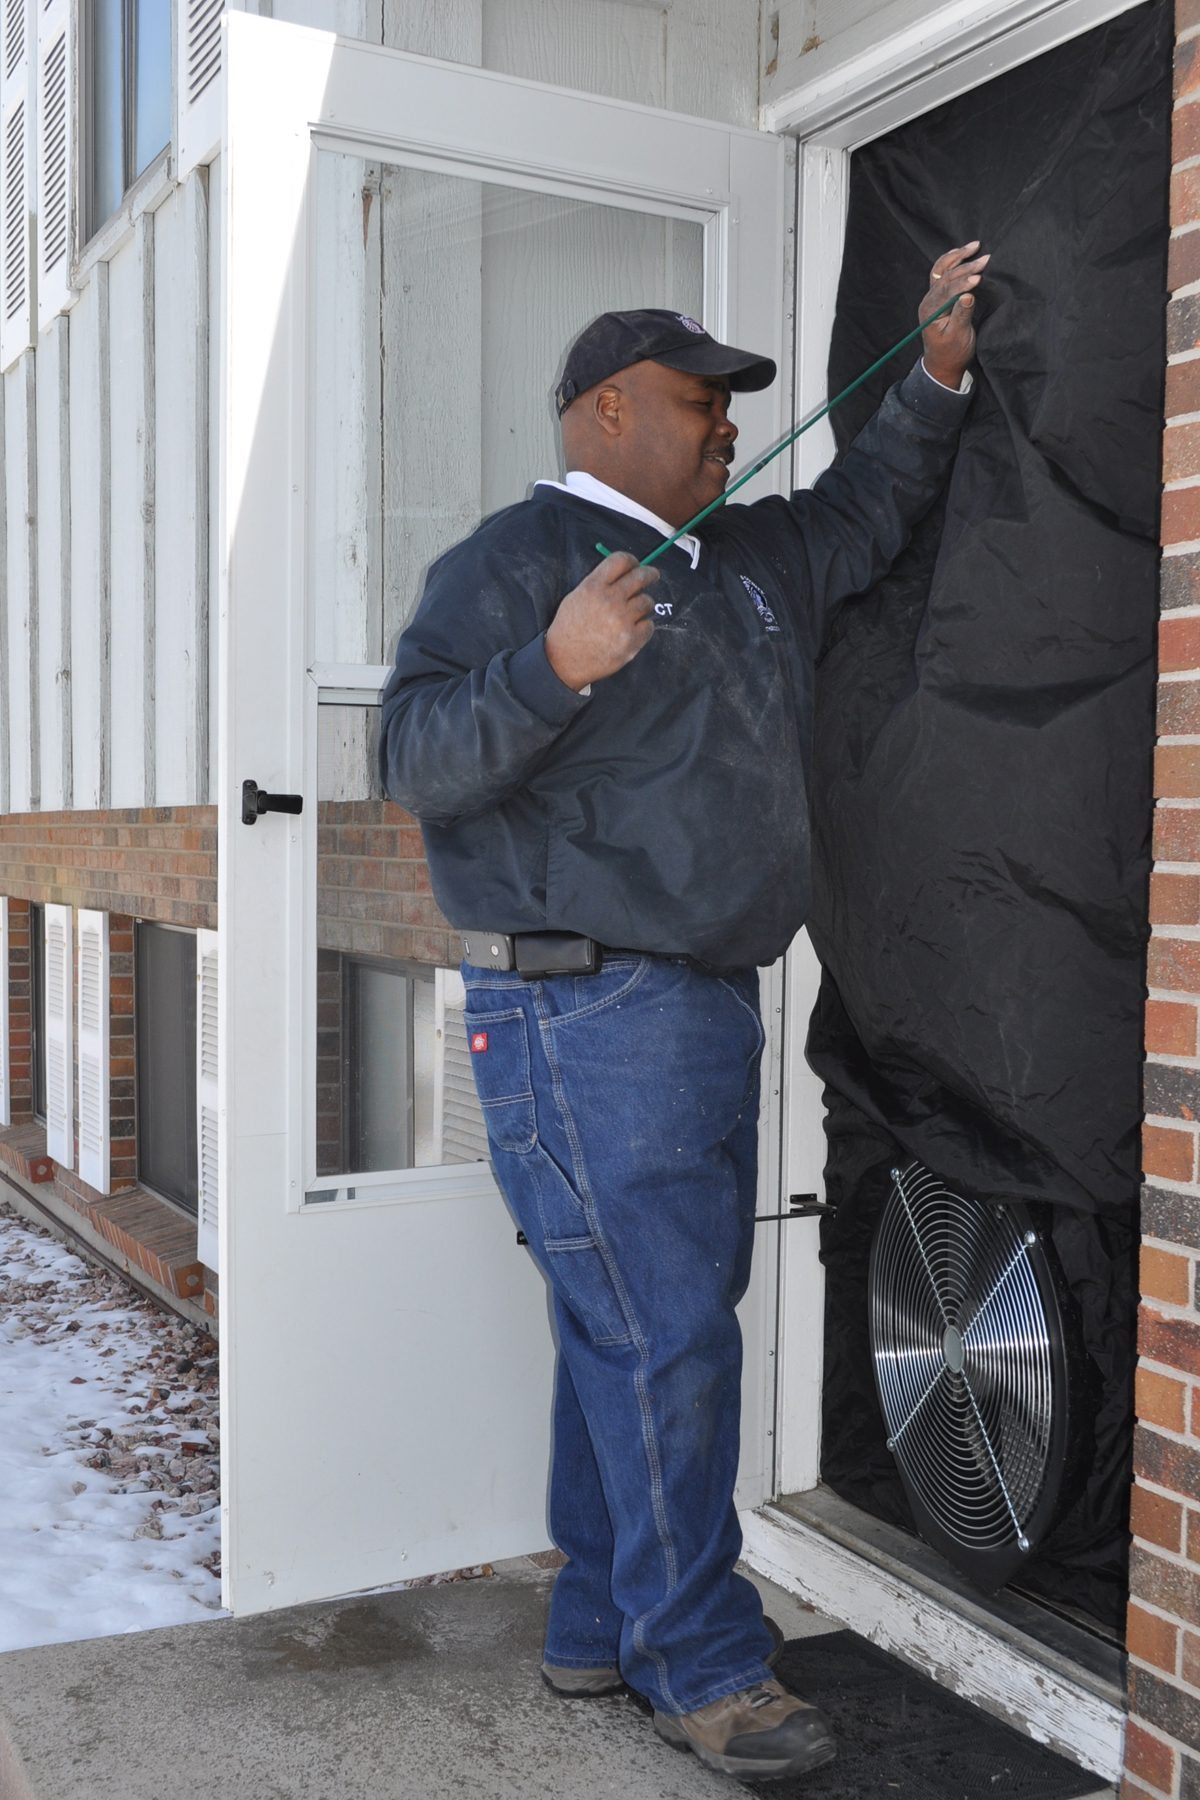 Weatherization tech conducts a blower door test